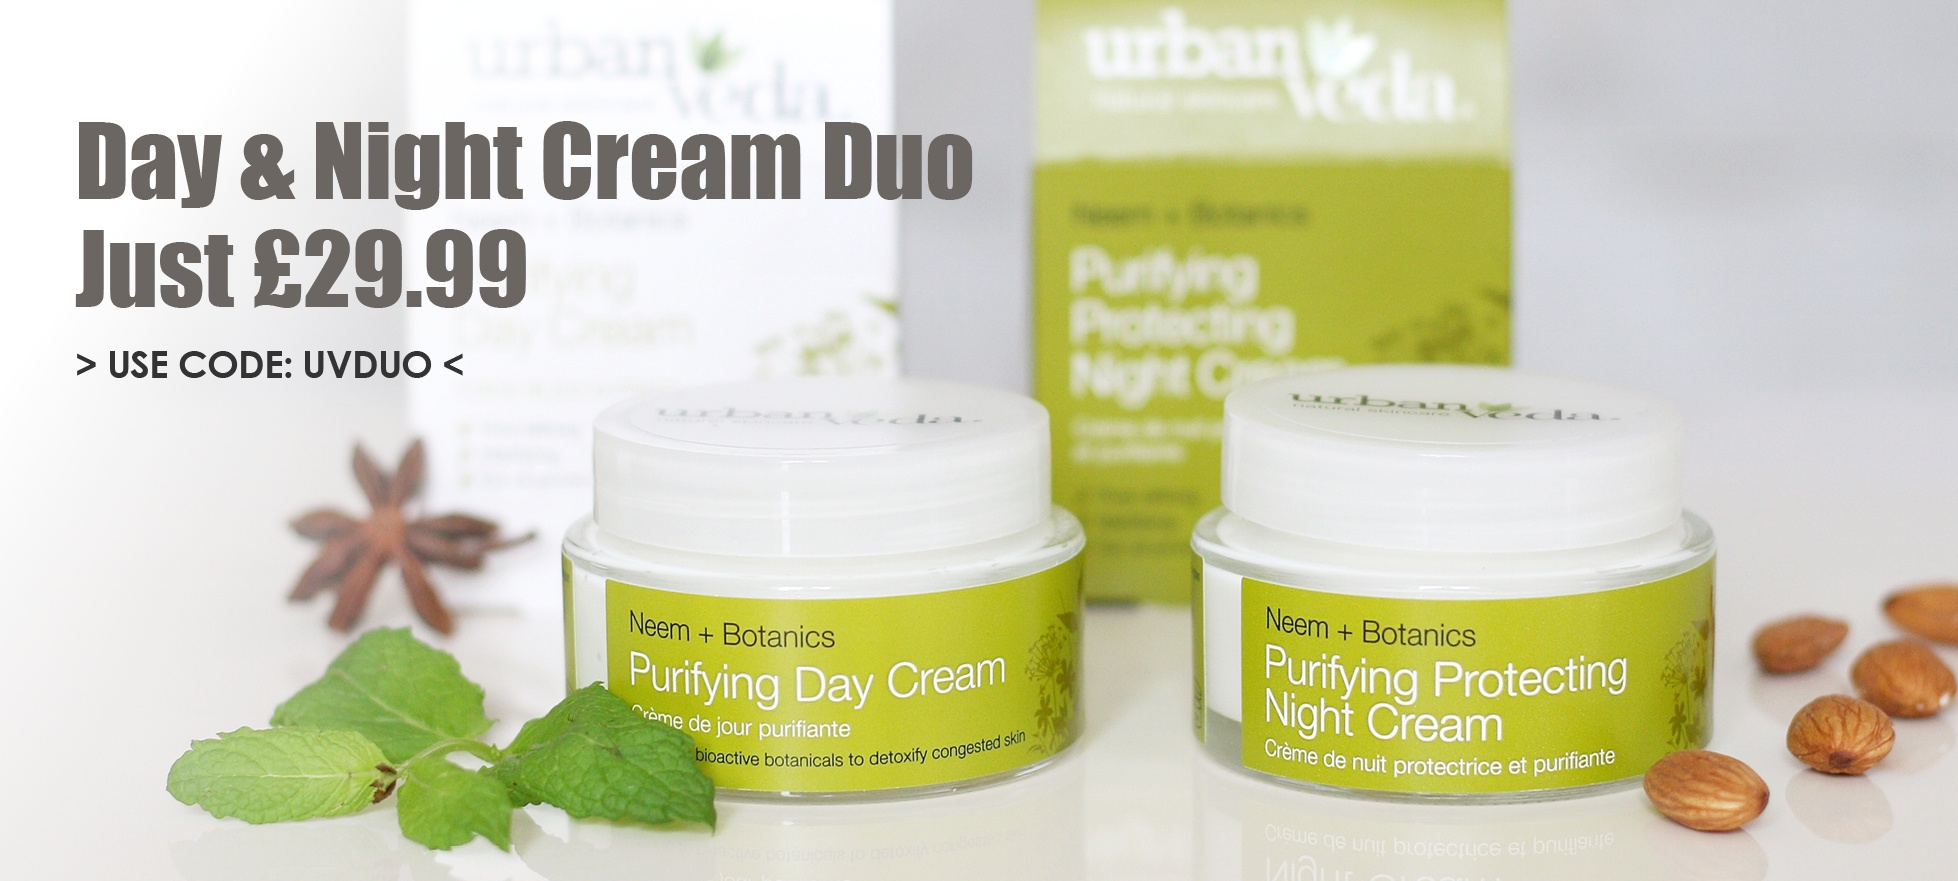 Urban Veda Cream Day and Night Duo for £29.99